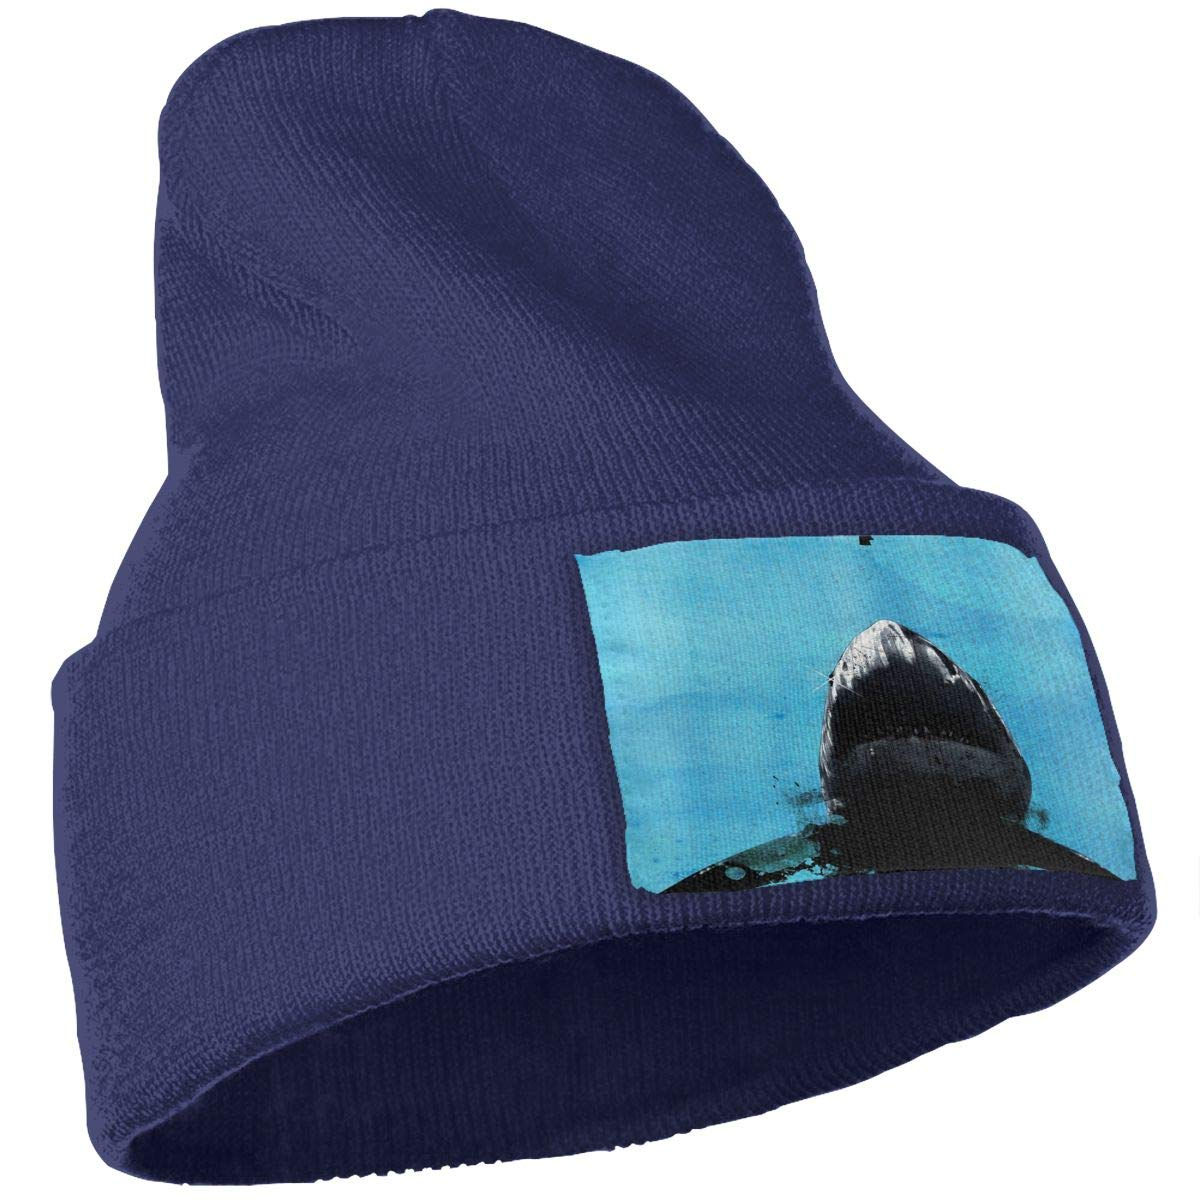 Horror Shark Hat for Men and Women Winter Warm Hats Knit Slouchy Thick Skull Cap Black